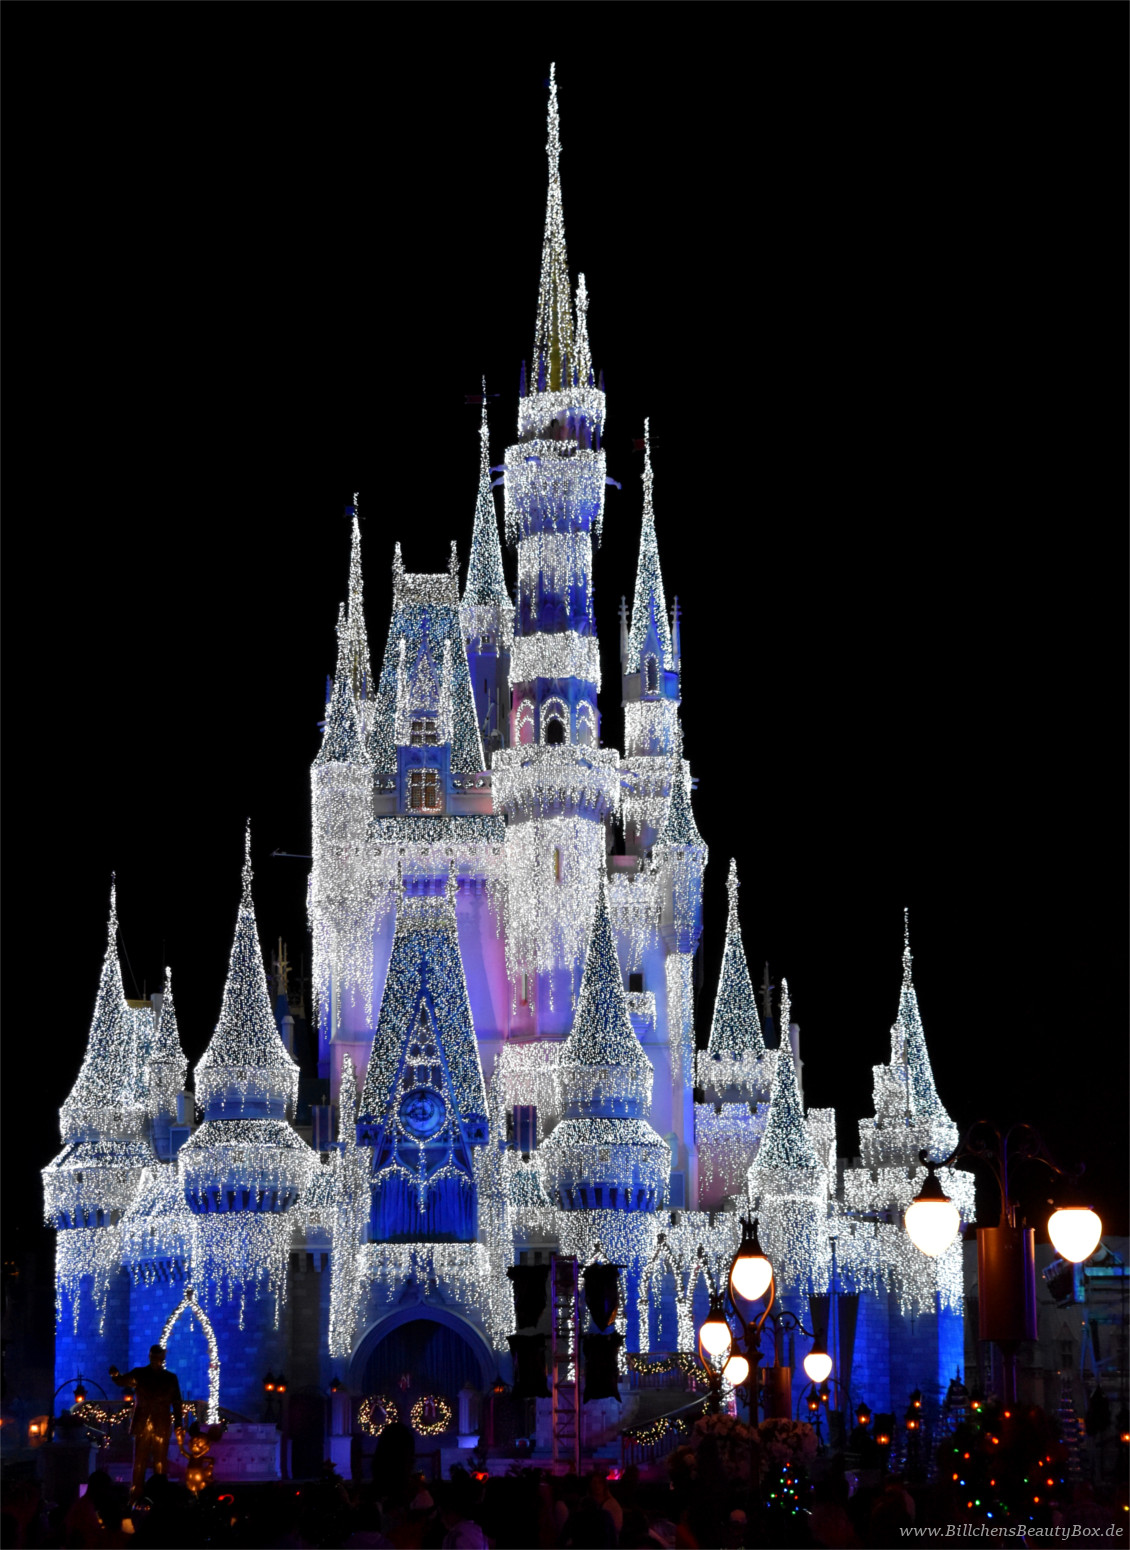 Disney World Orlando Florida - Mickey's Very Merry Christmas Party - Frozen